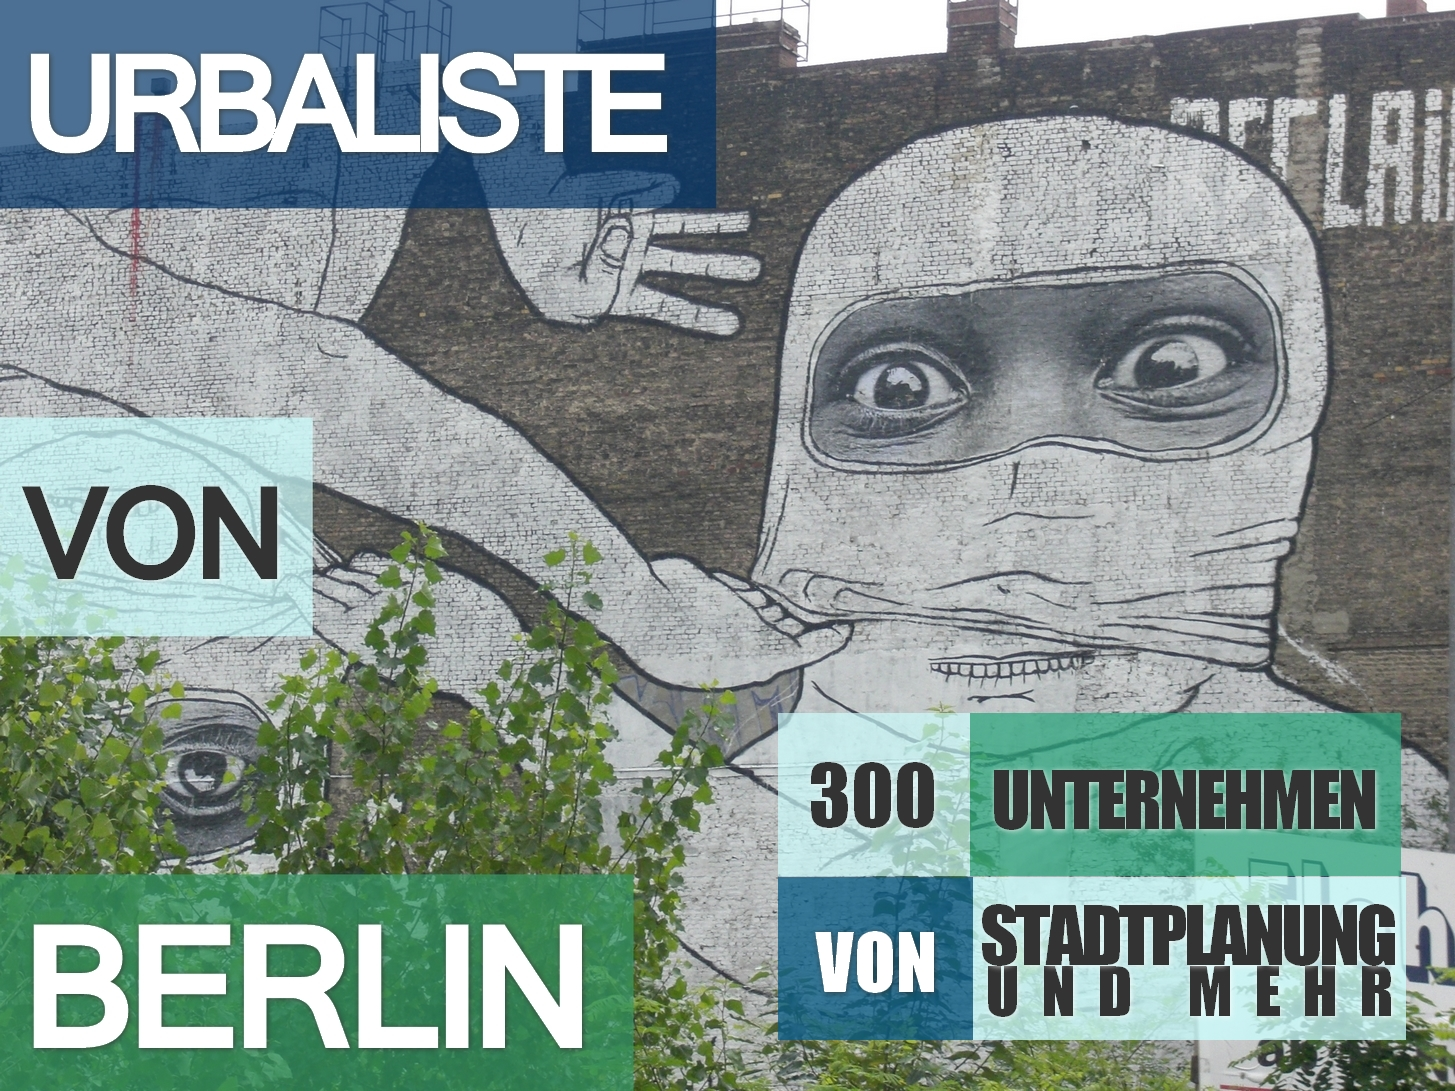 Urbaliste Berlin graffiti